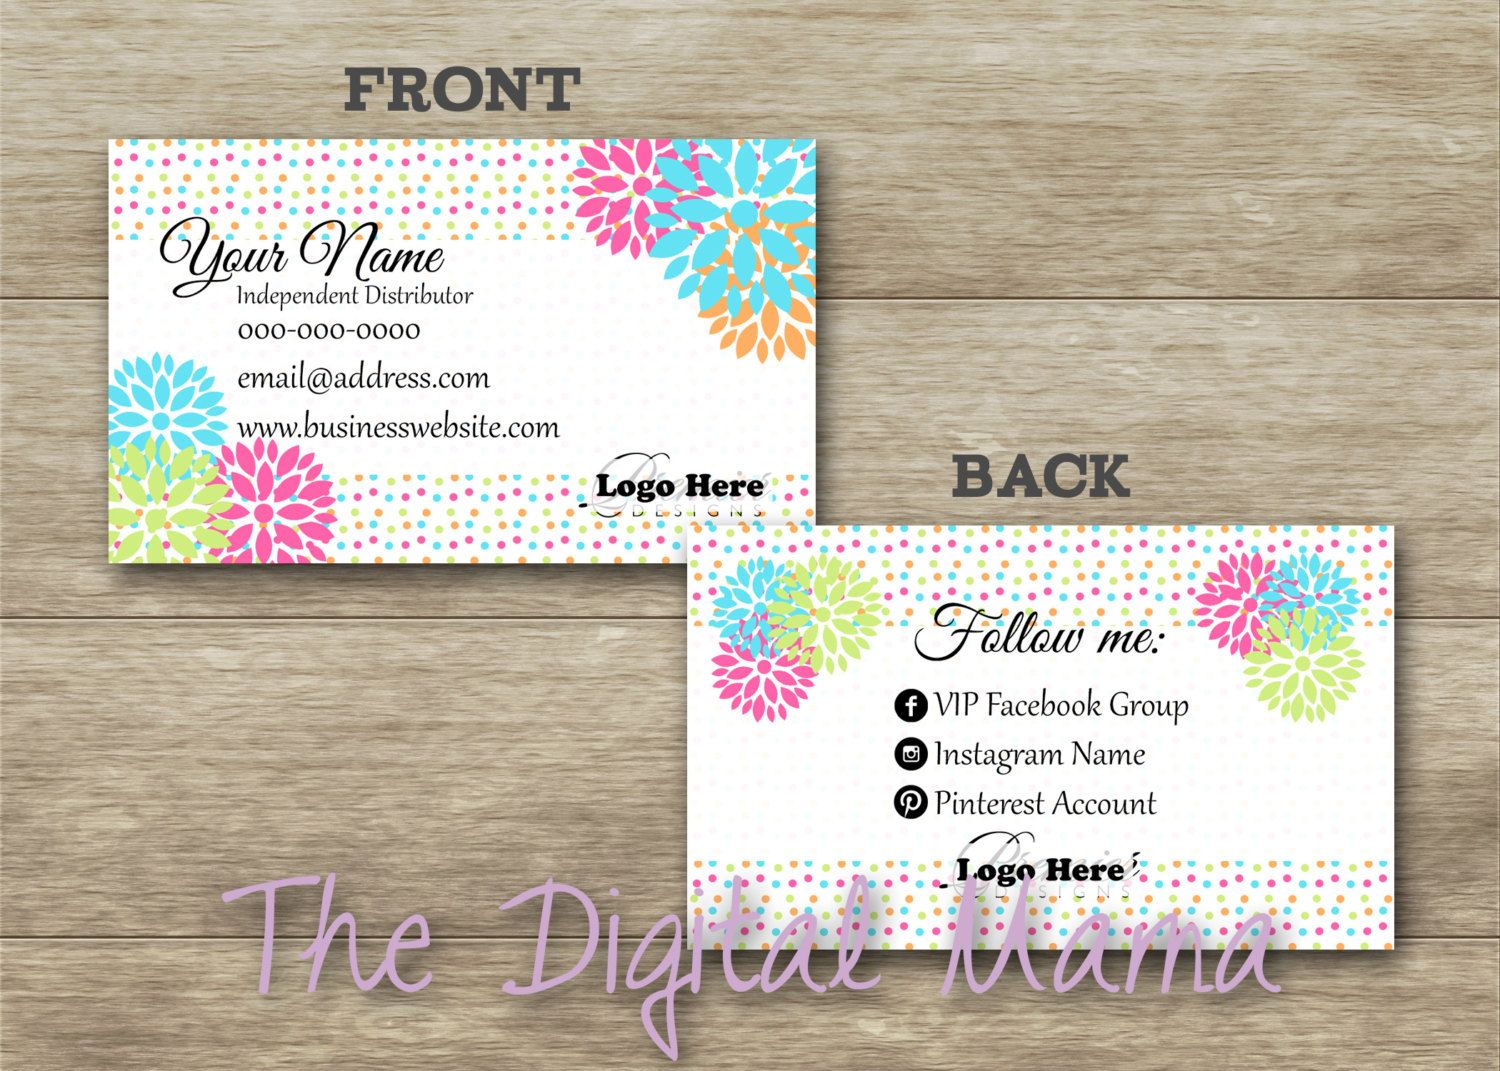 Premier Designs Jewelry Business Card Design - Premier Designs ...